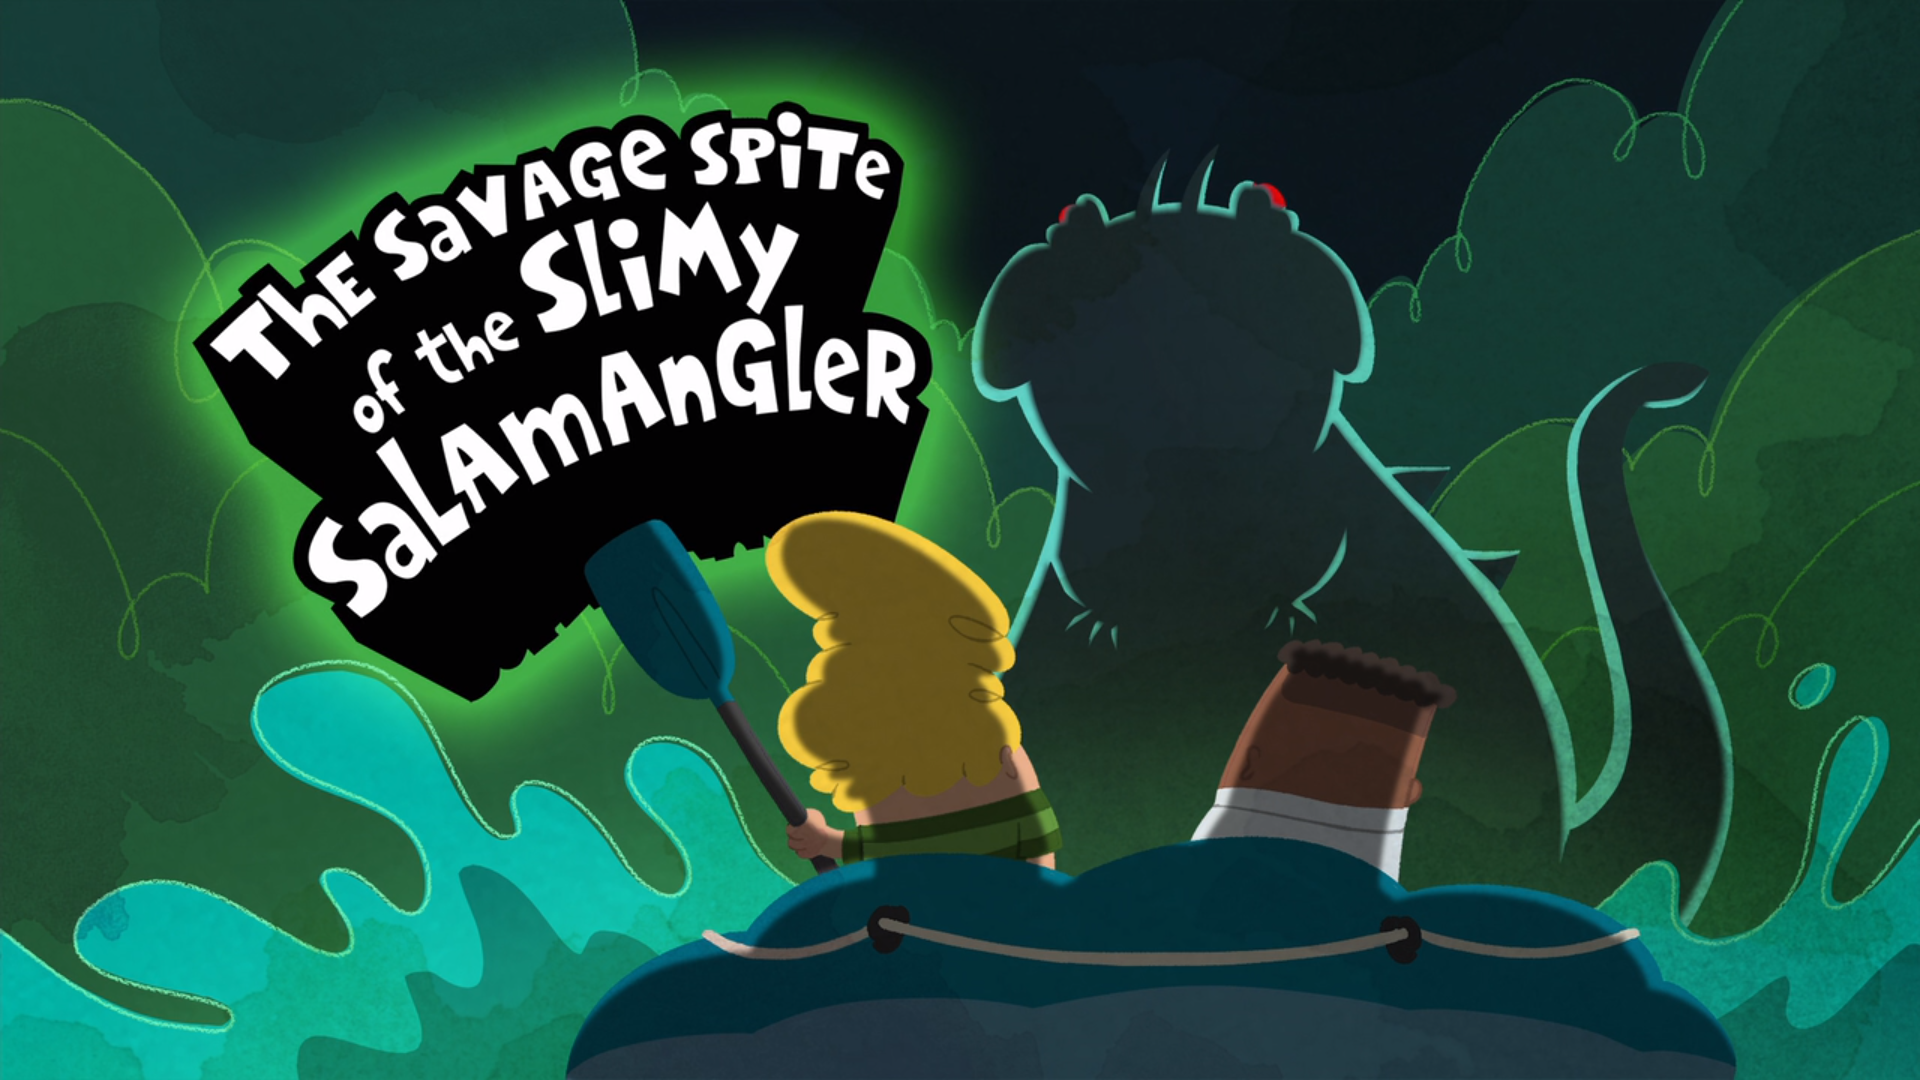 The Savage Spite of the Slimy Salamangler